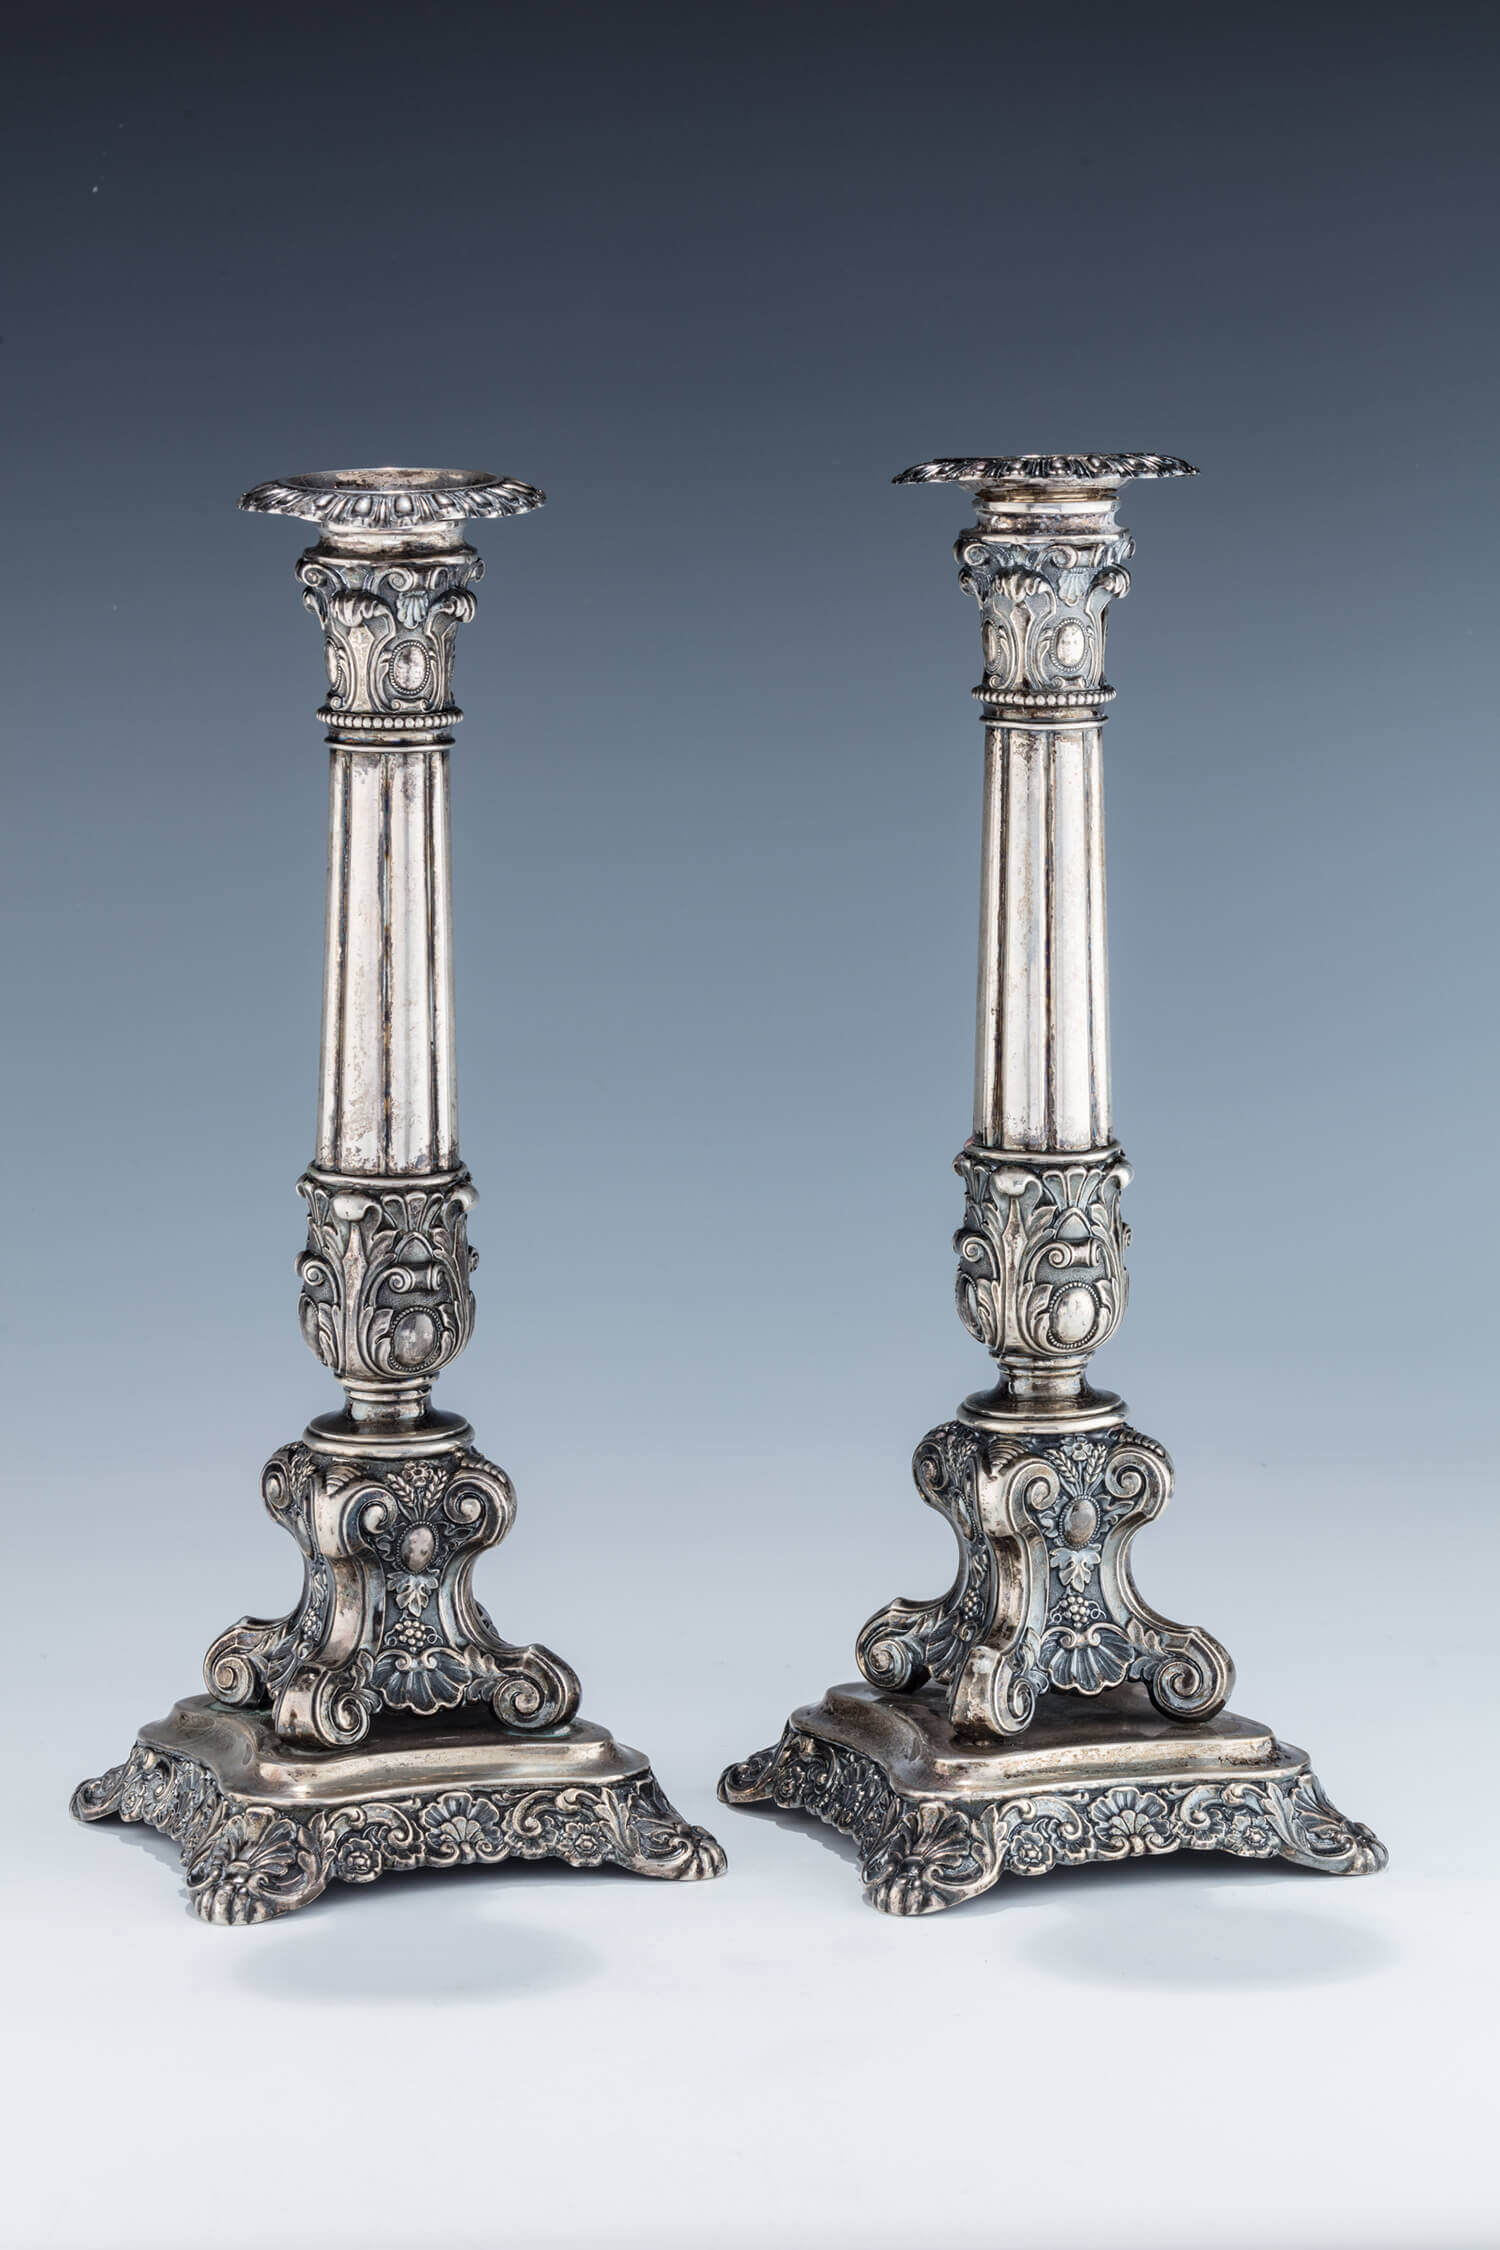 025. A PAIR OF LARGE SILVER CANDLESTICKS